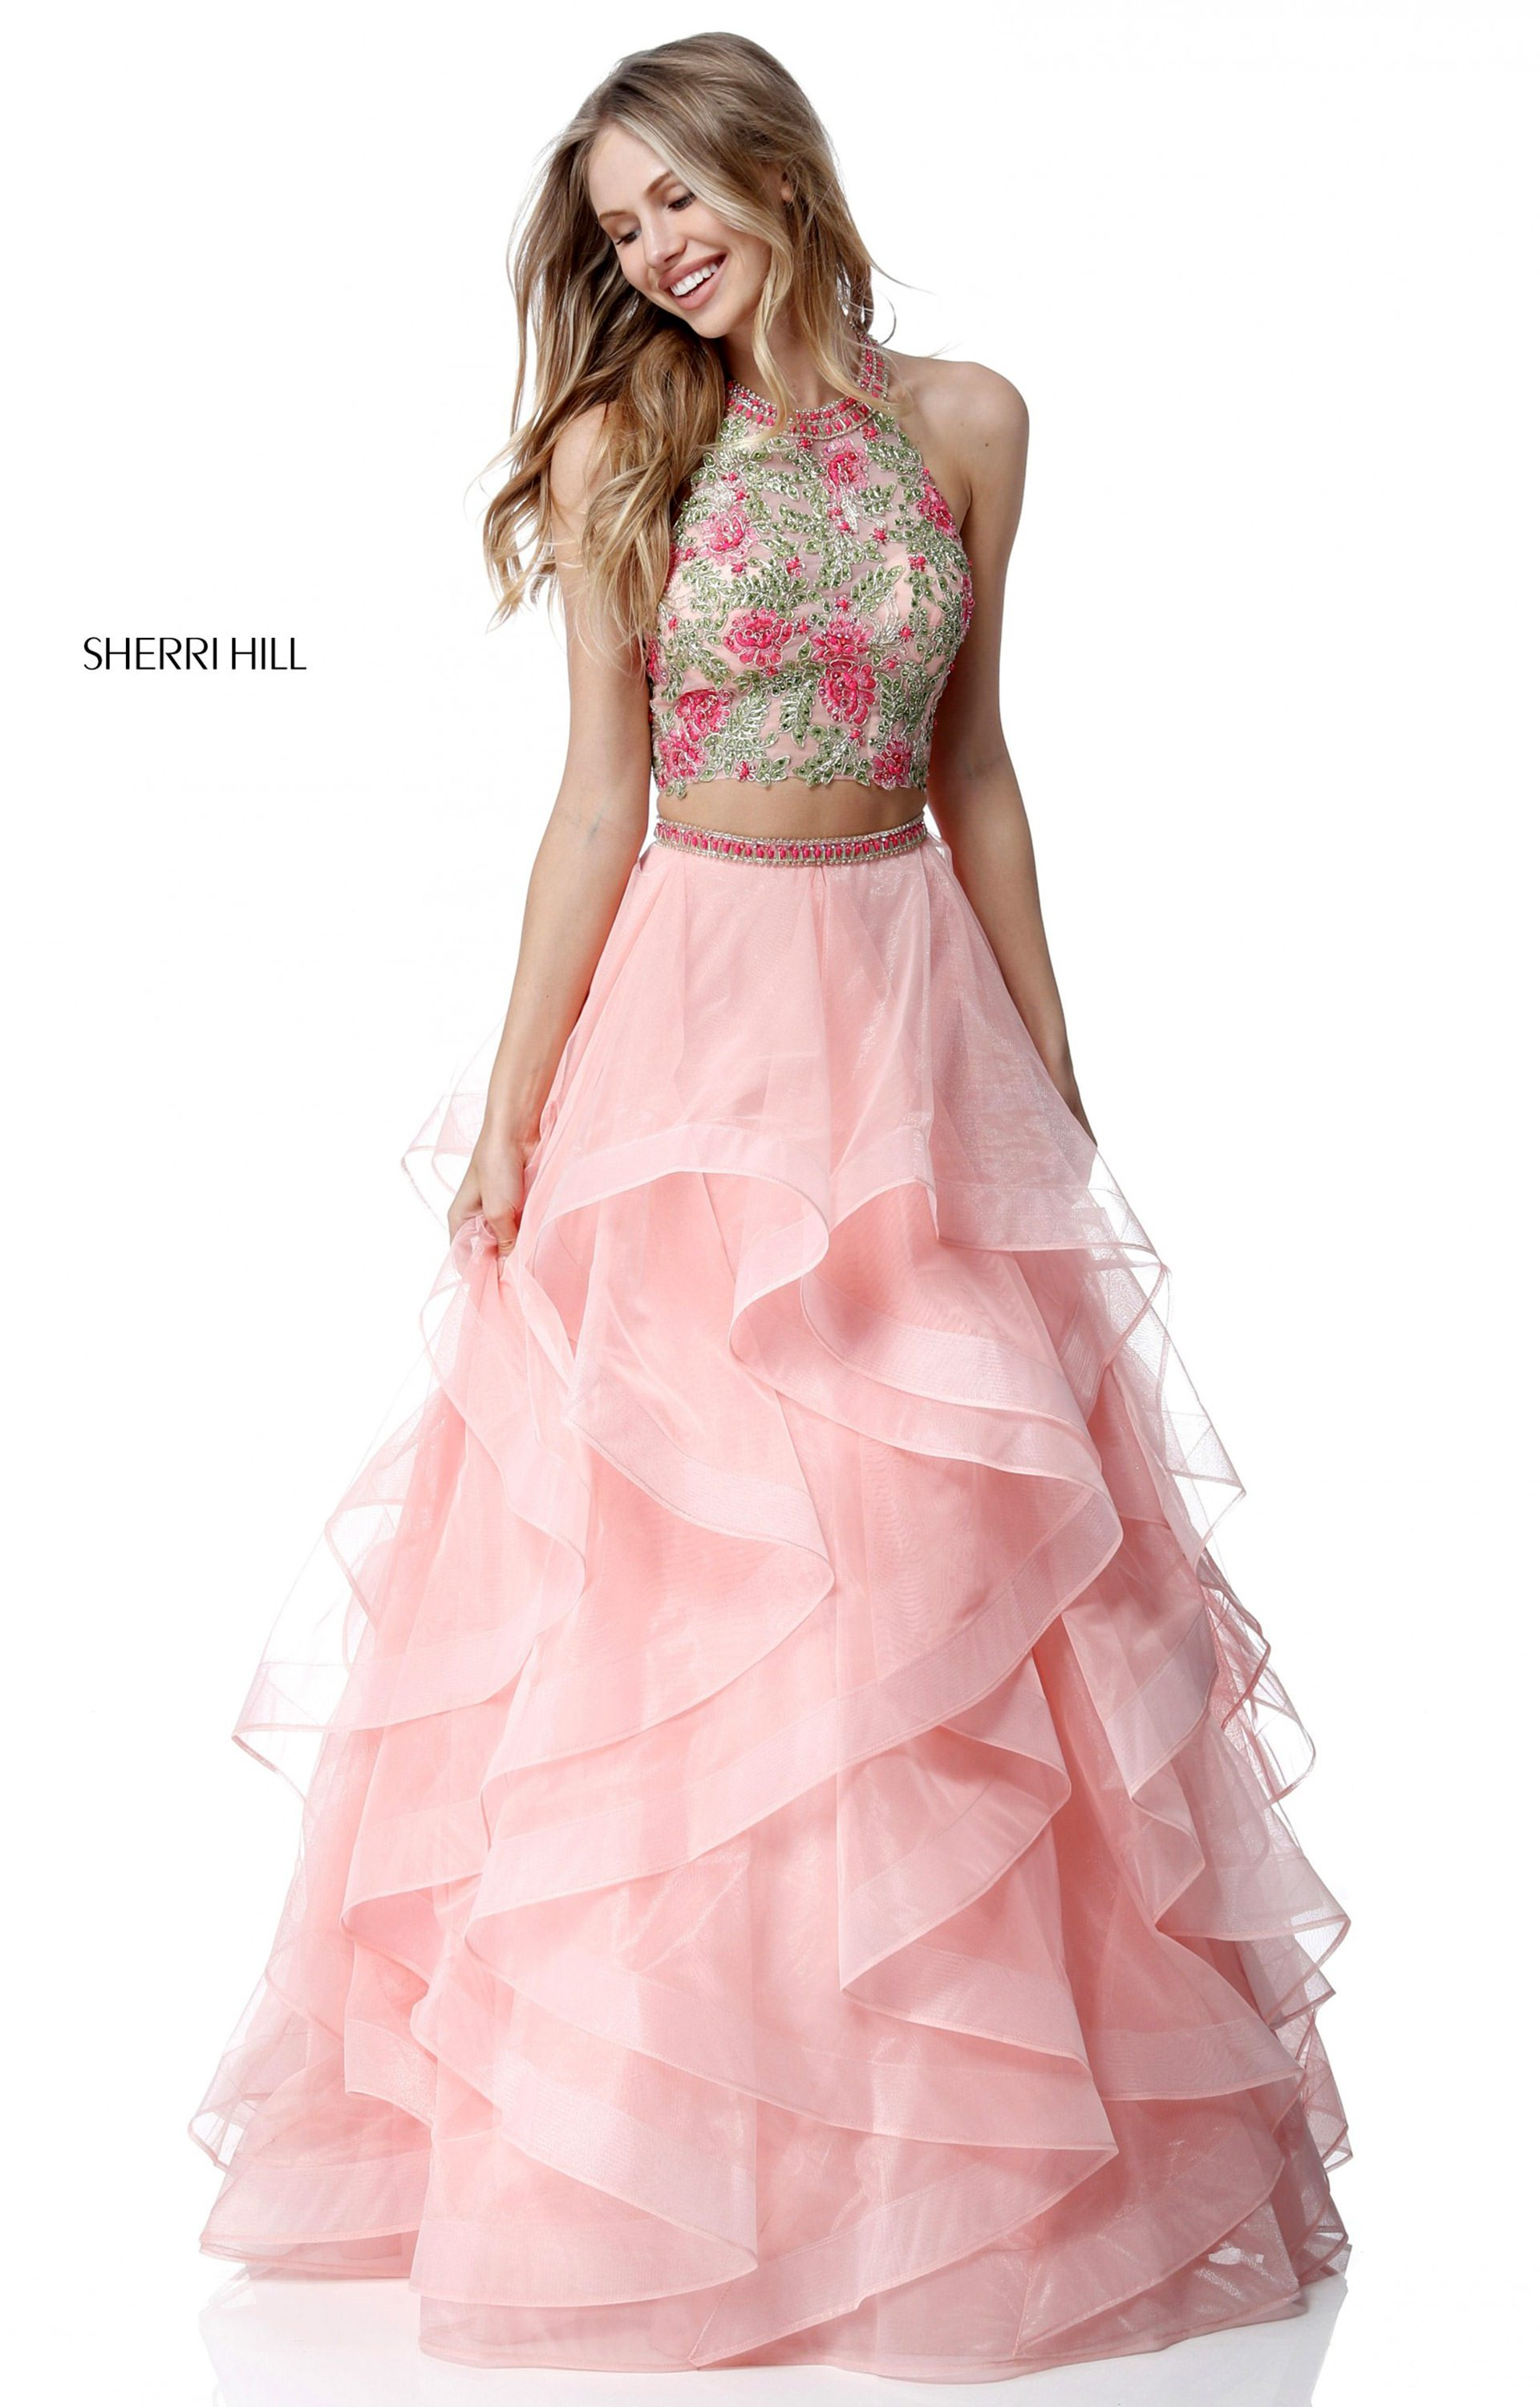 Sherri Hill 51615 - 2 Piece Ruffled Organza Ball Gown Prom Dress